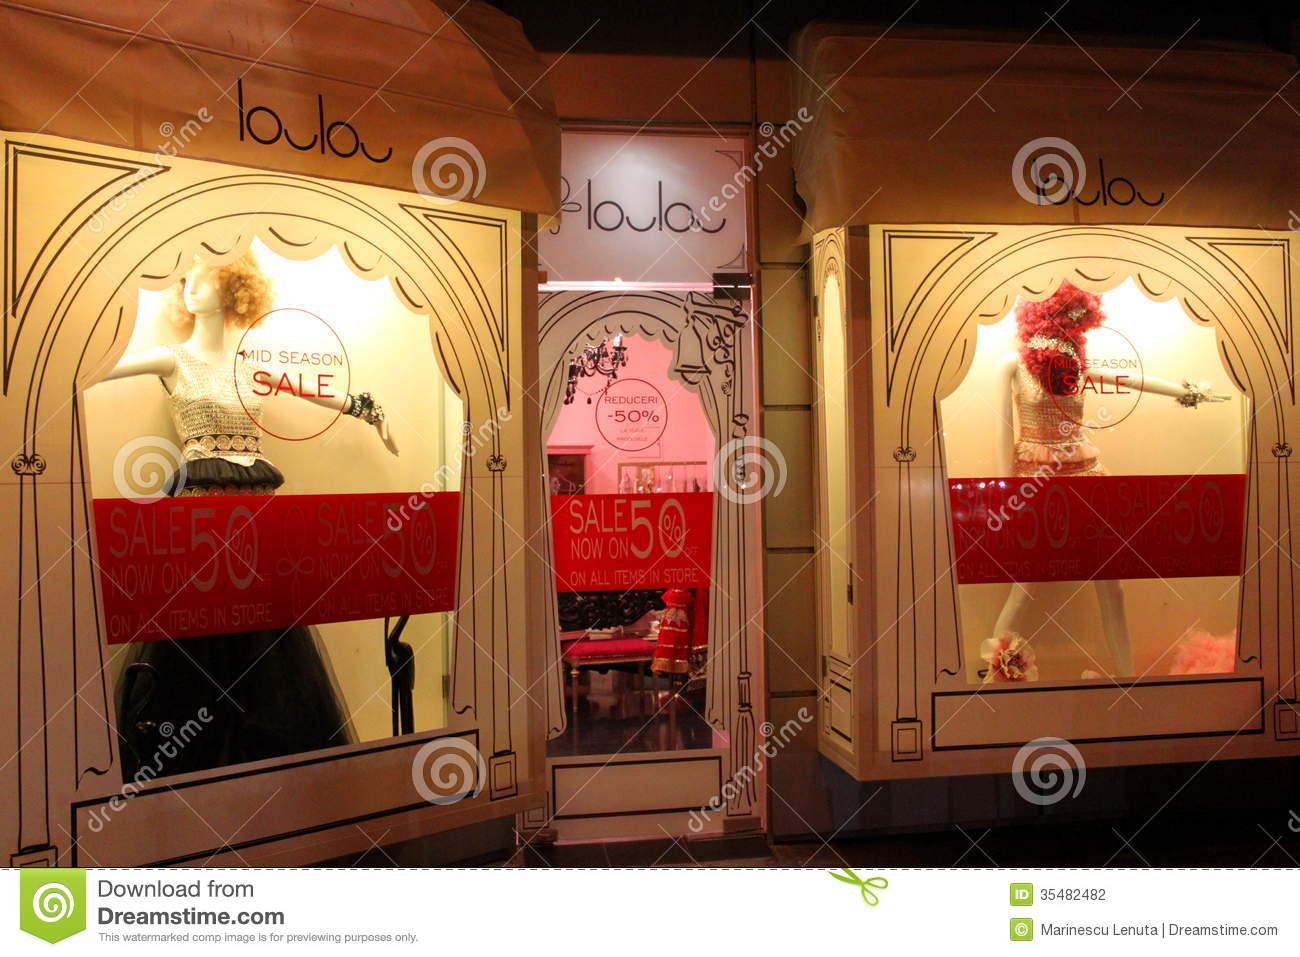 boutique-women-clothing-night-bucharest-romania-35482482.jpg